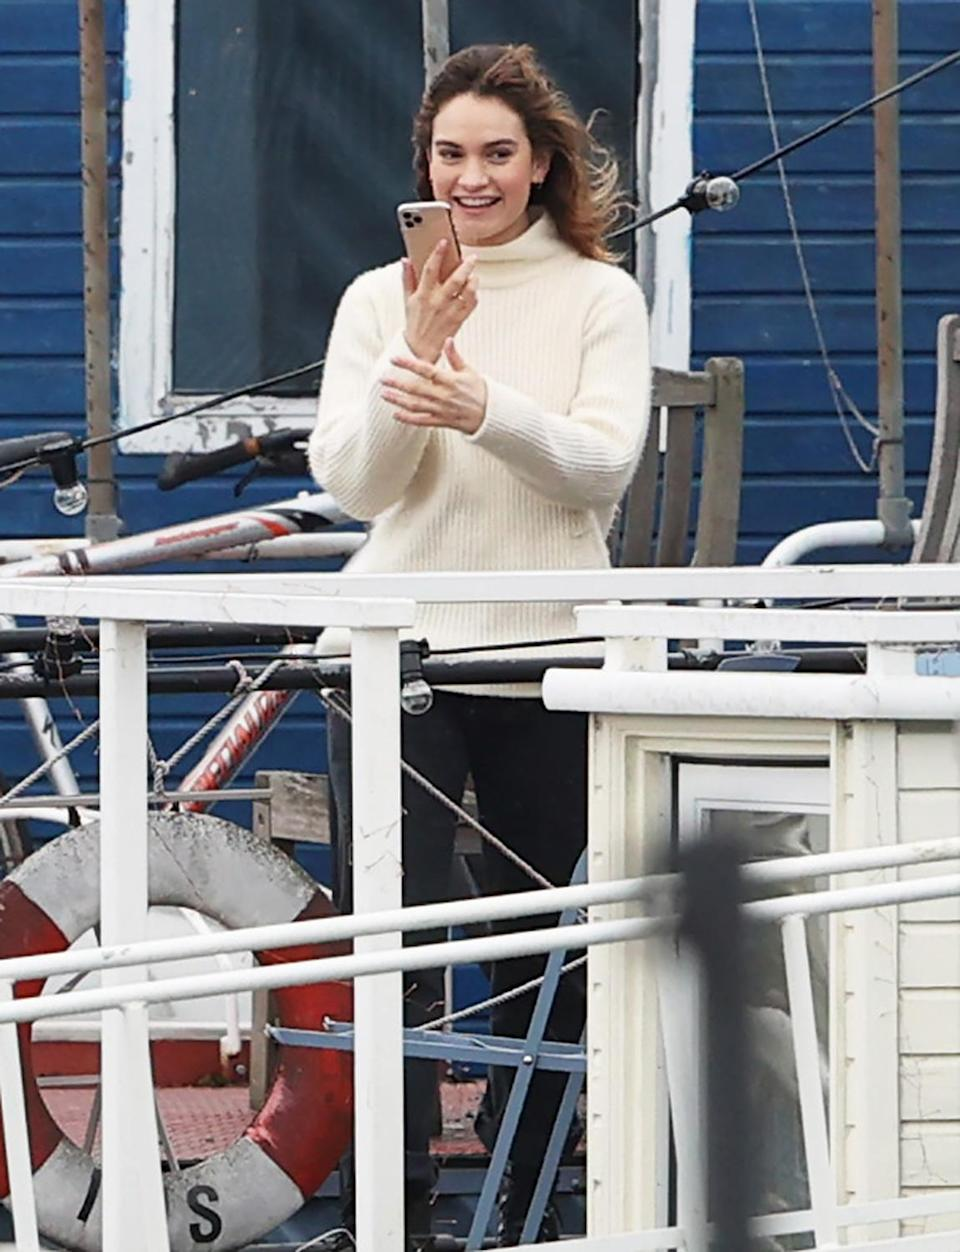 <p>Lily James is seen on the set of <em>What's Love Got to Do with It,</em> as she tries to set a Tinder date on her phone, on Friday in London. </p>